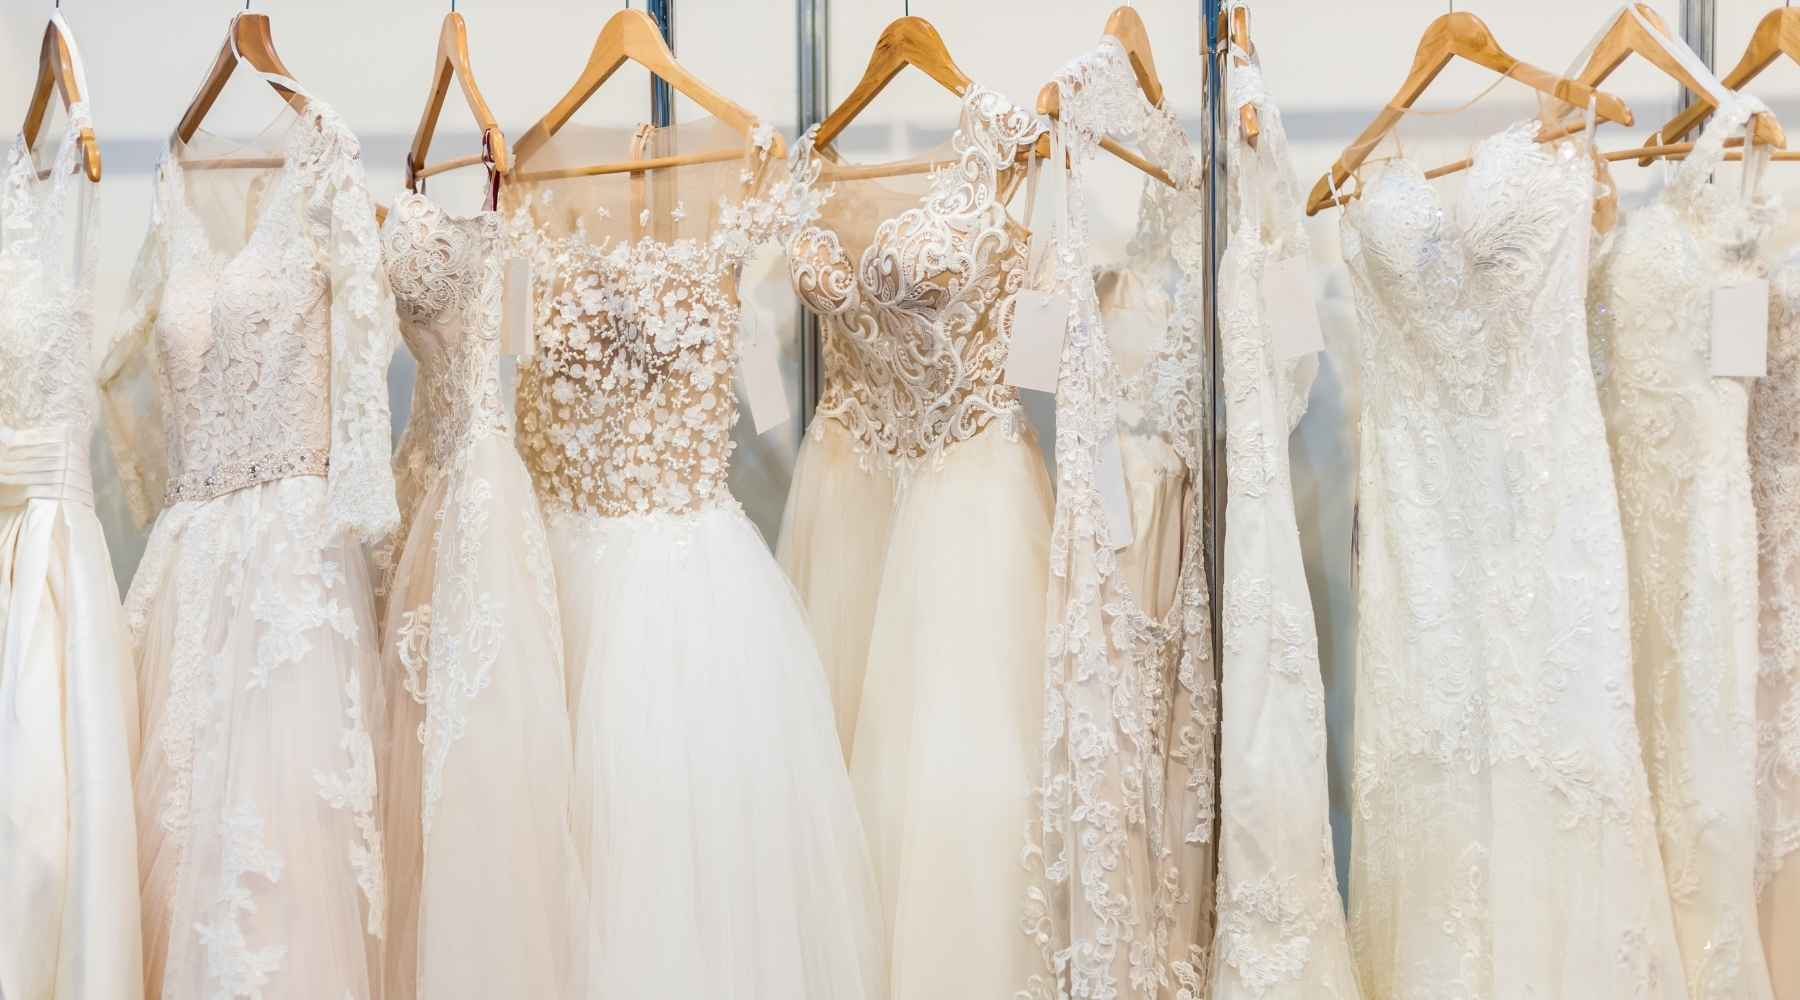 sample sale - 20 creative ways to save money on your wedding